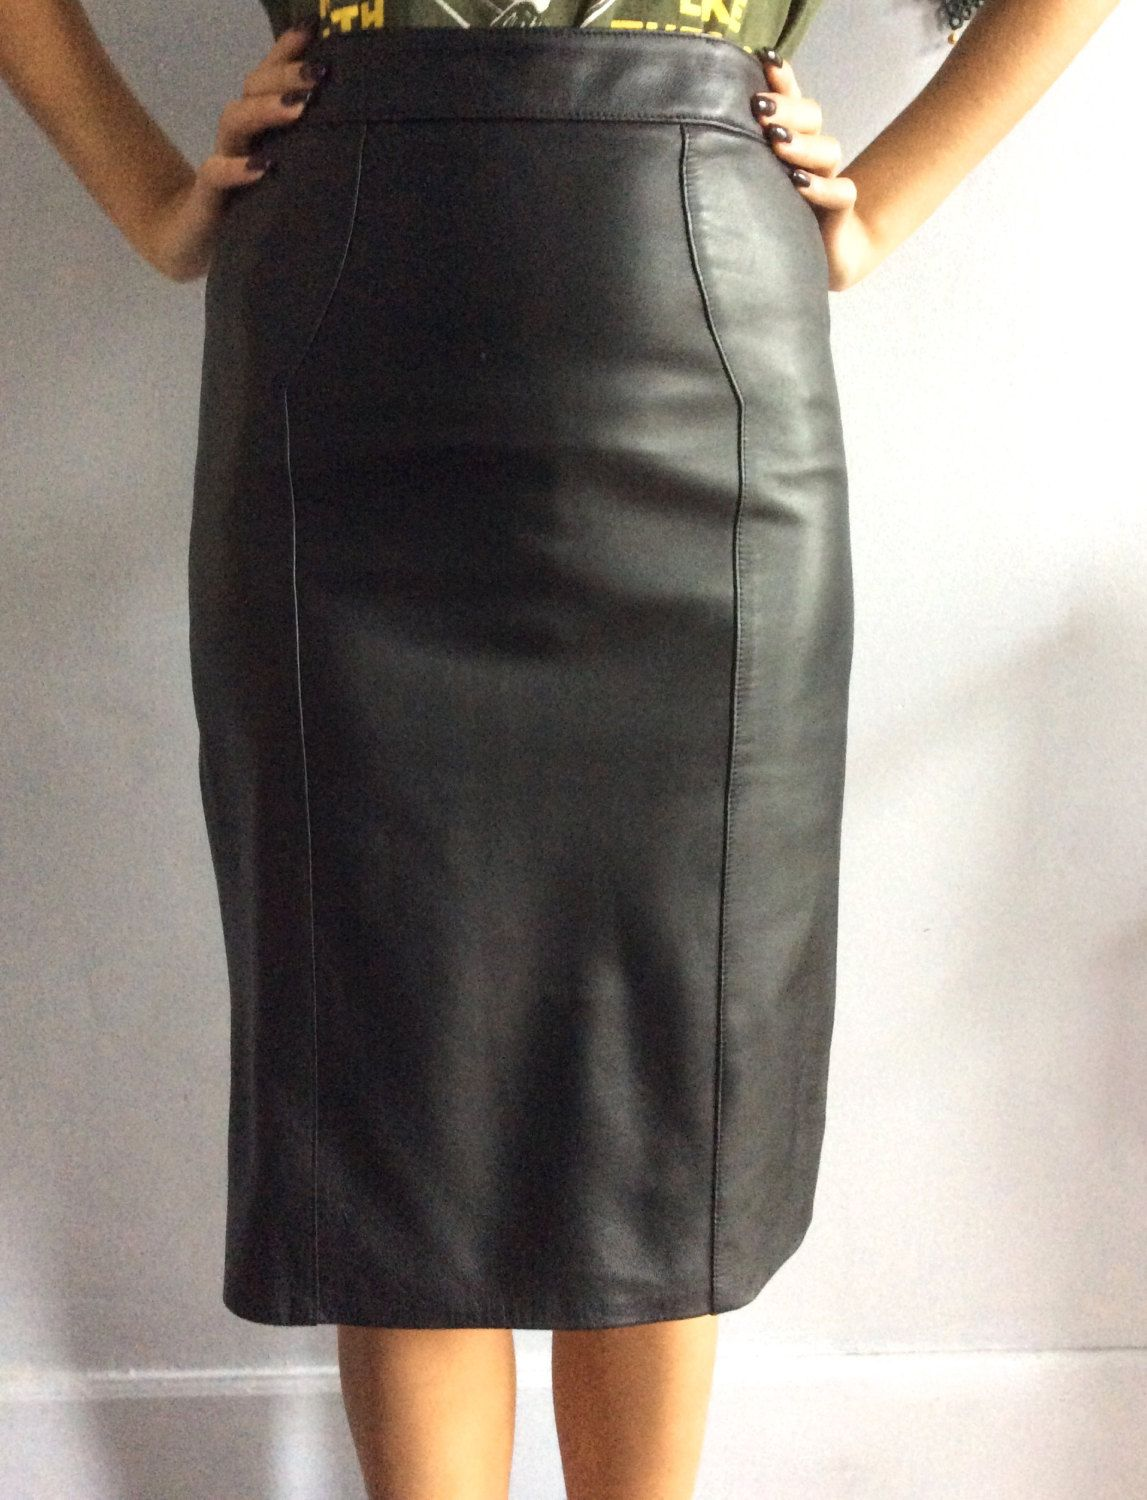 ee058a3cc1 90s lambskin leather pencil skirt vintage black leather pencil skirt made  in France 1990s tight leather skirt vtg plongé leather skirt by  VintagestarParis ...